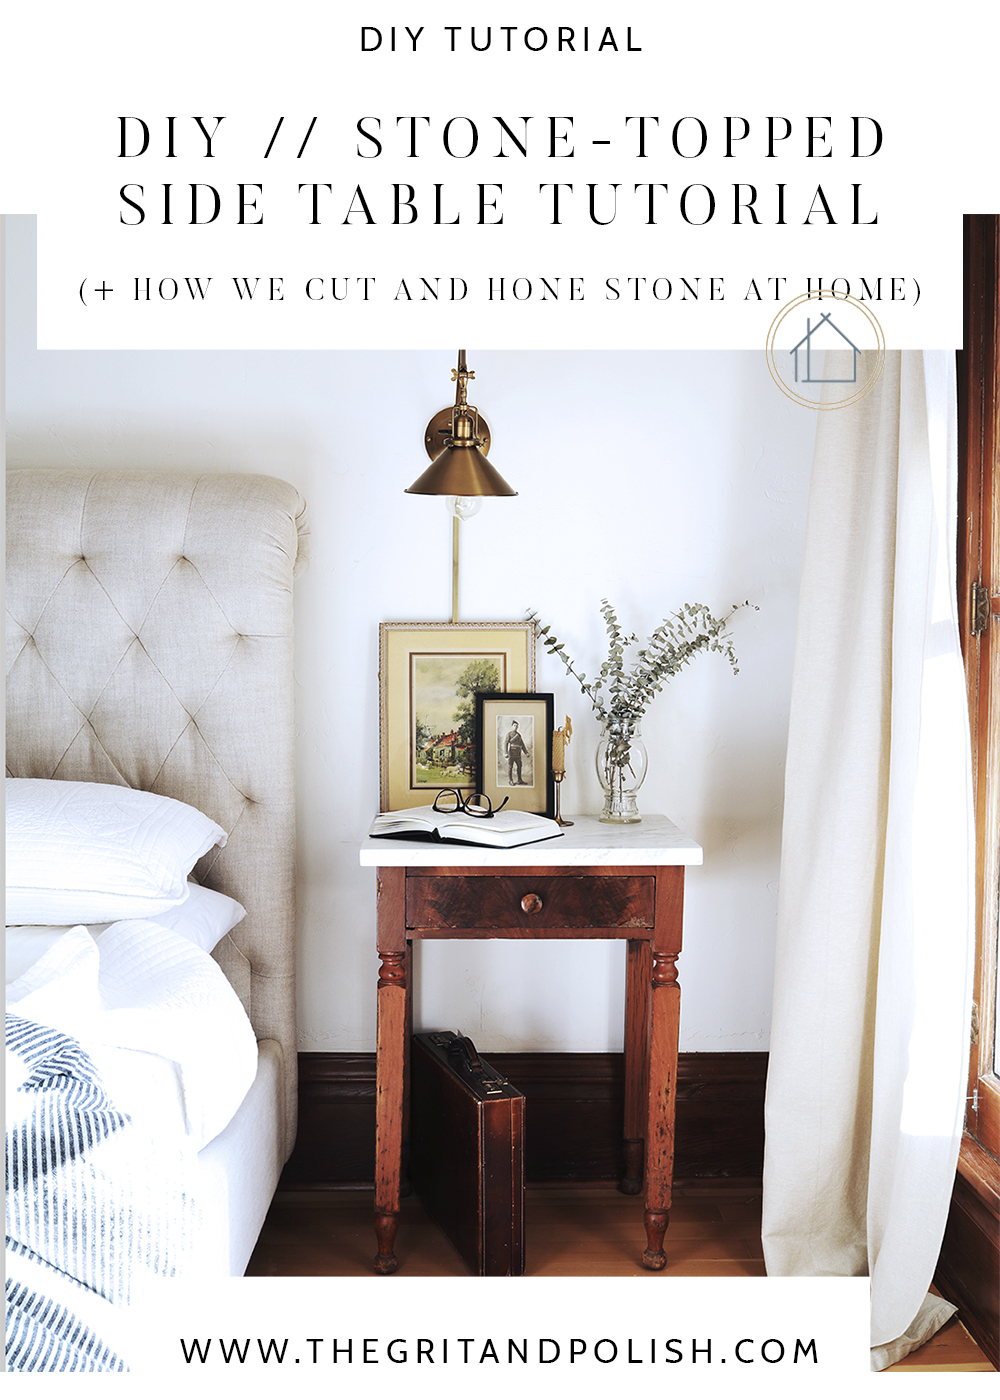 The Grit and Polish - How to DIY stone topped side table CROP.jpg